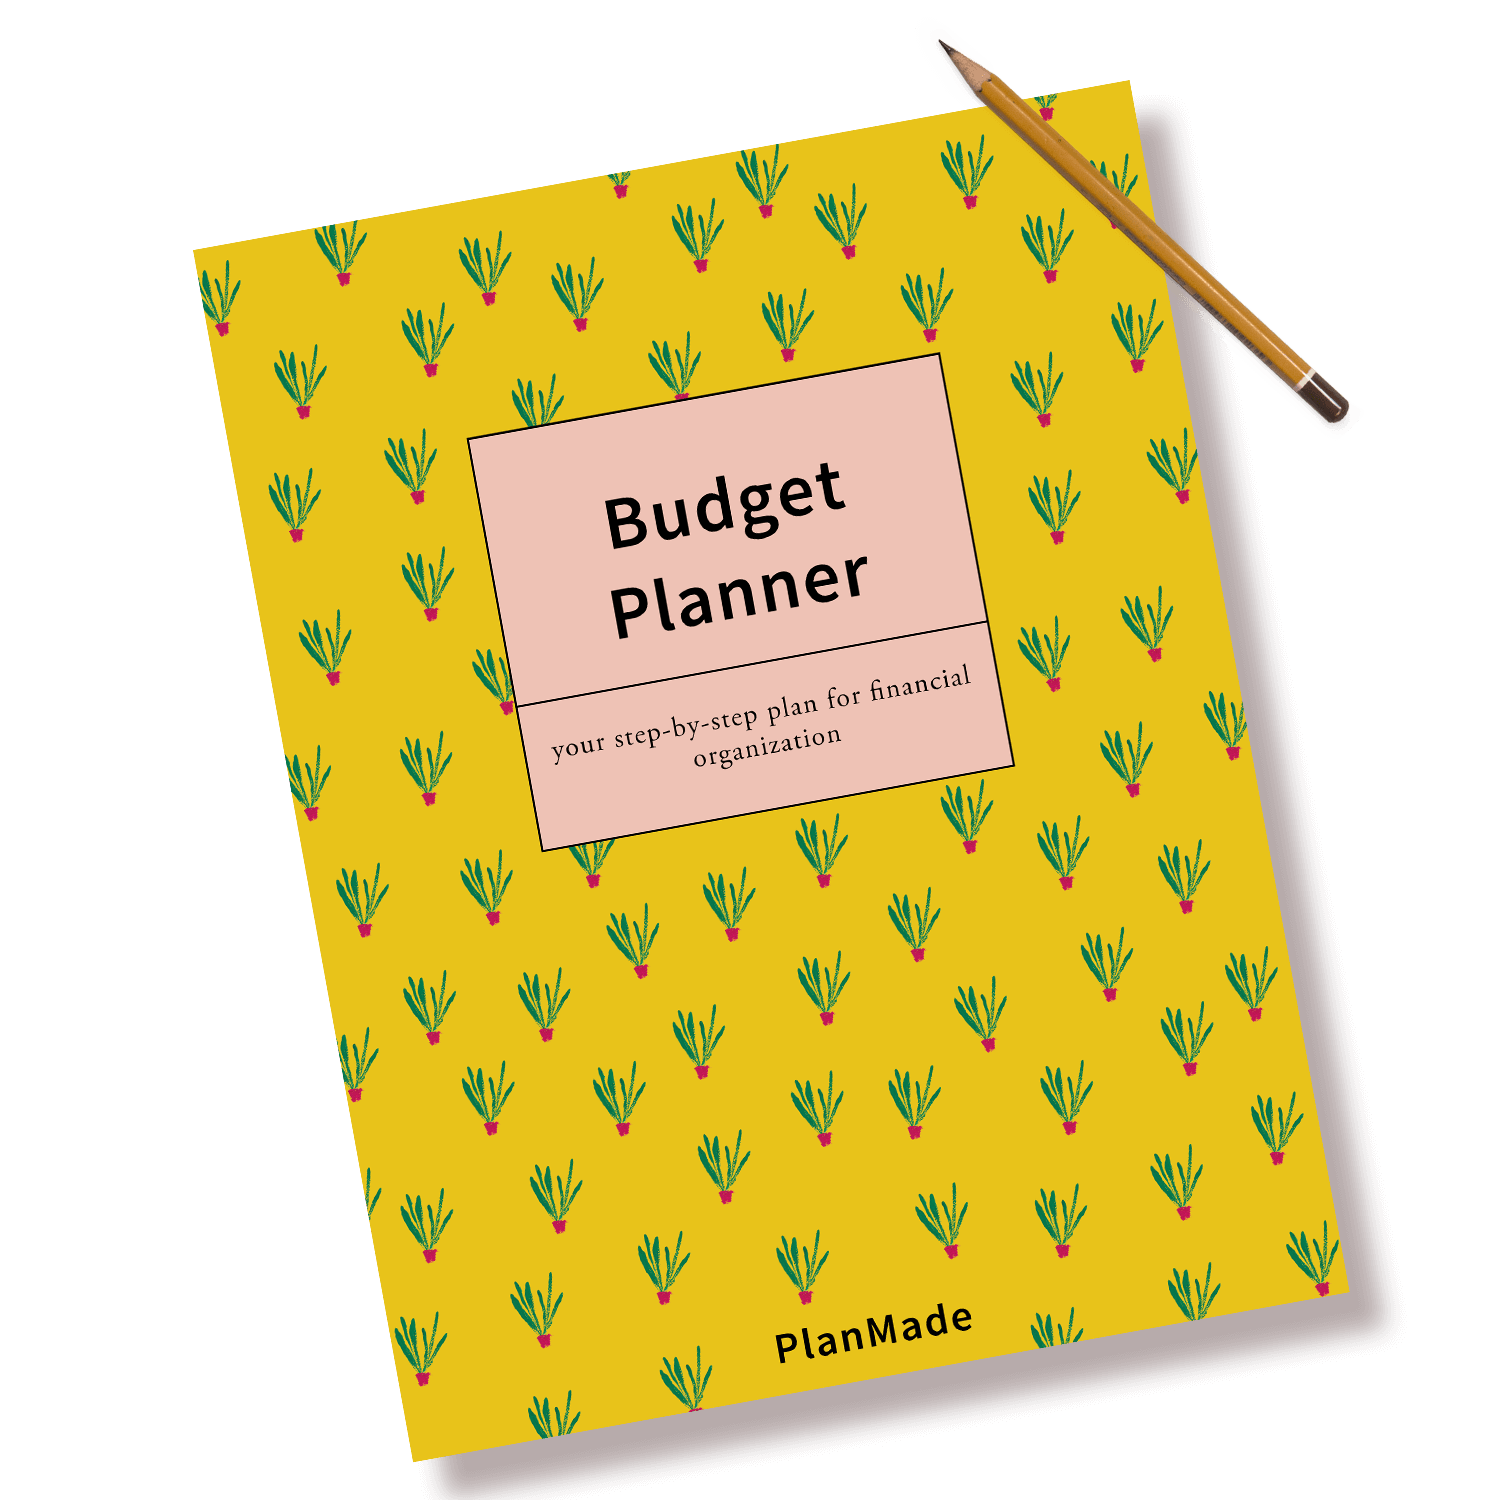 of planmade budget planner cover with pencil to the side